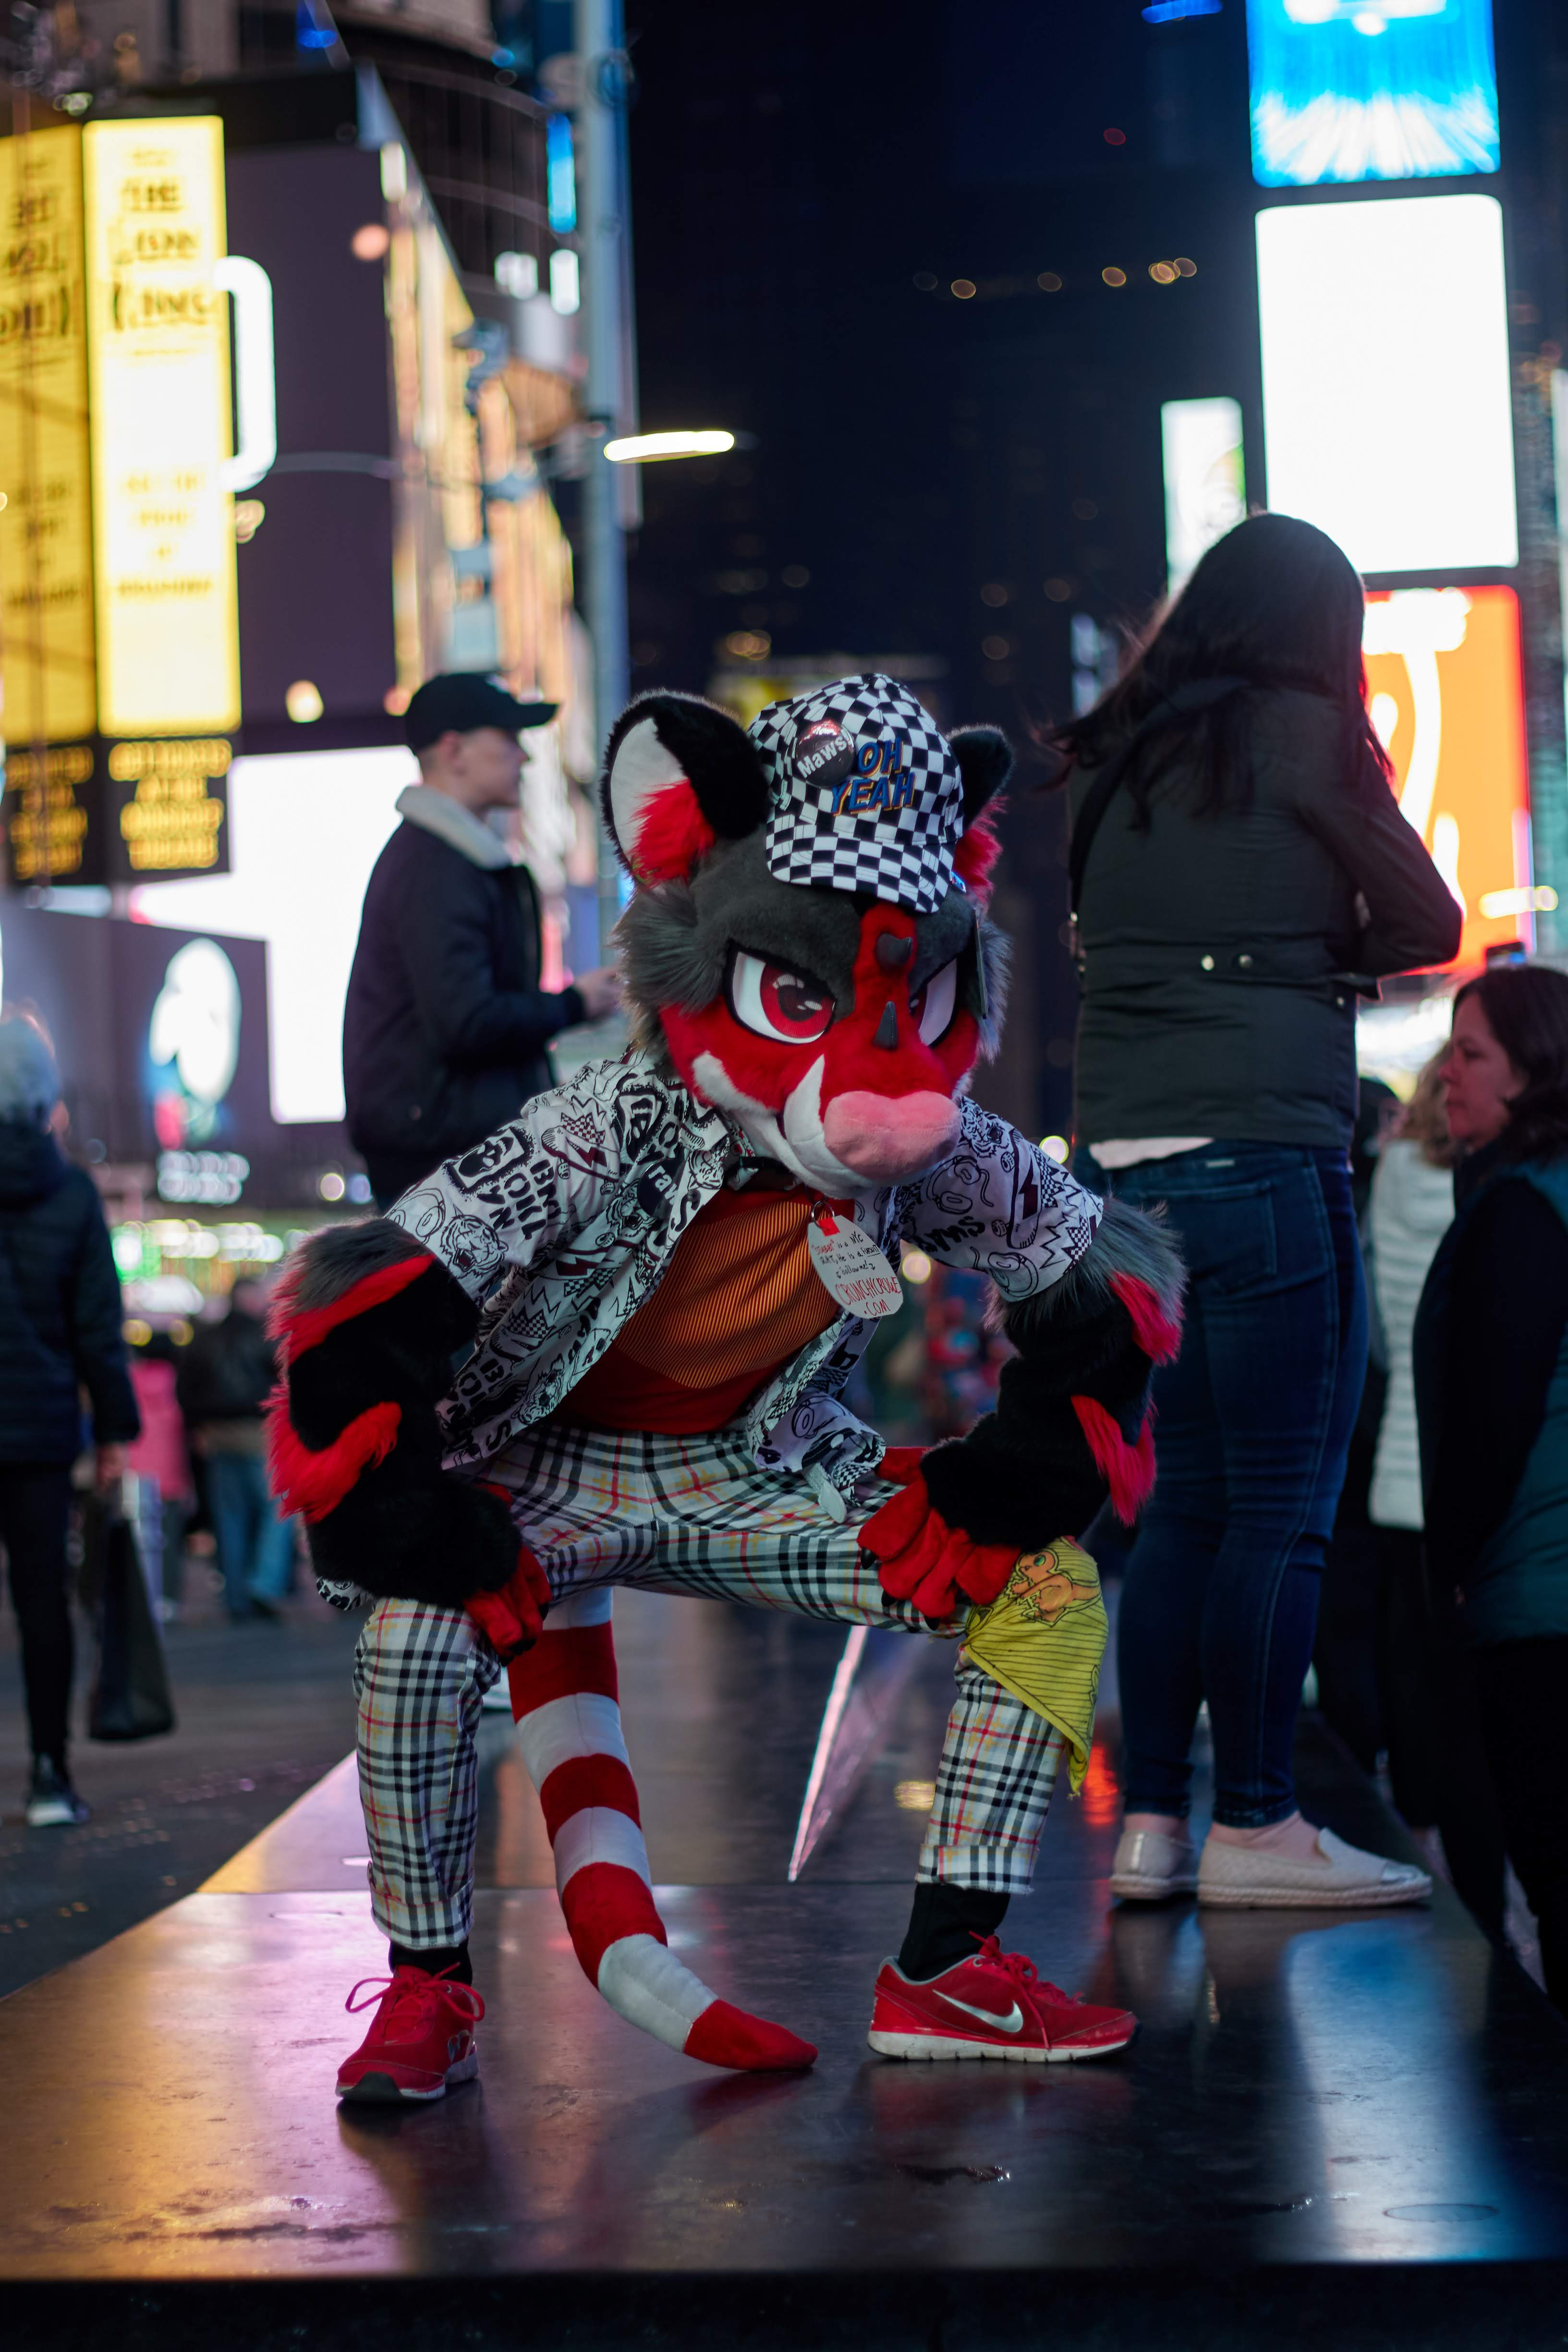 Stabby in times square